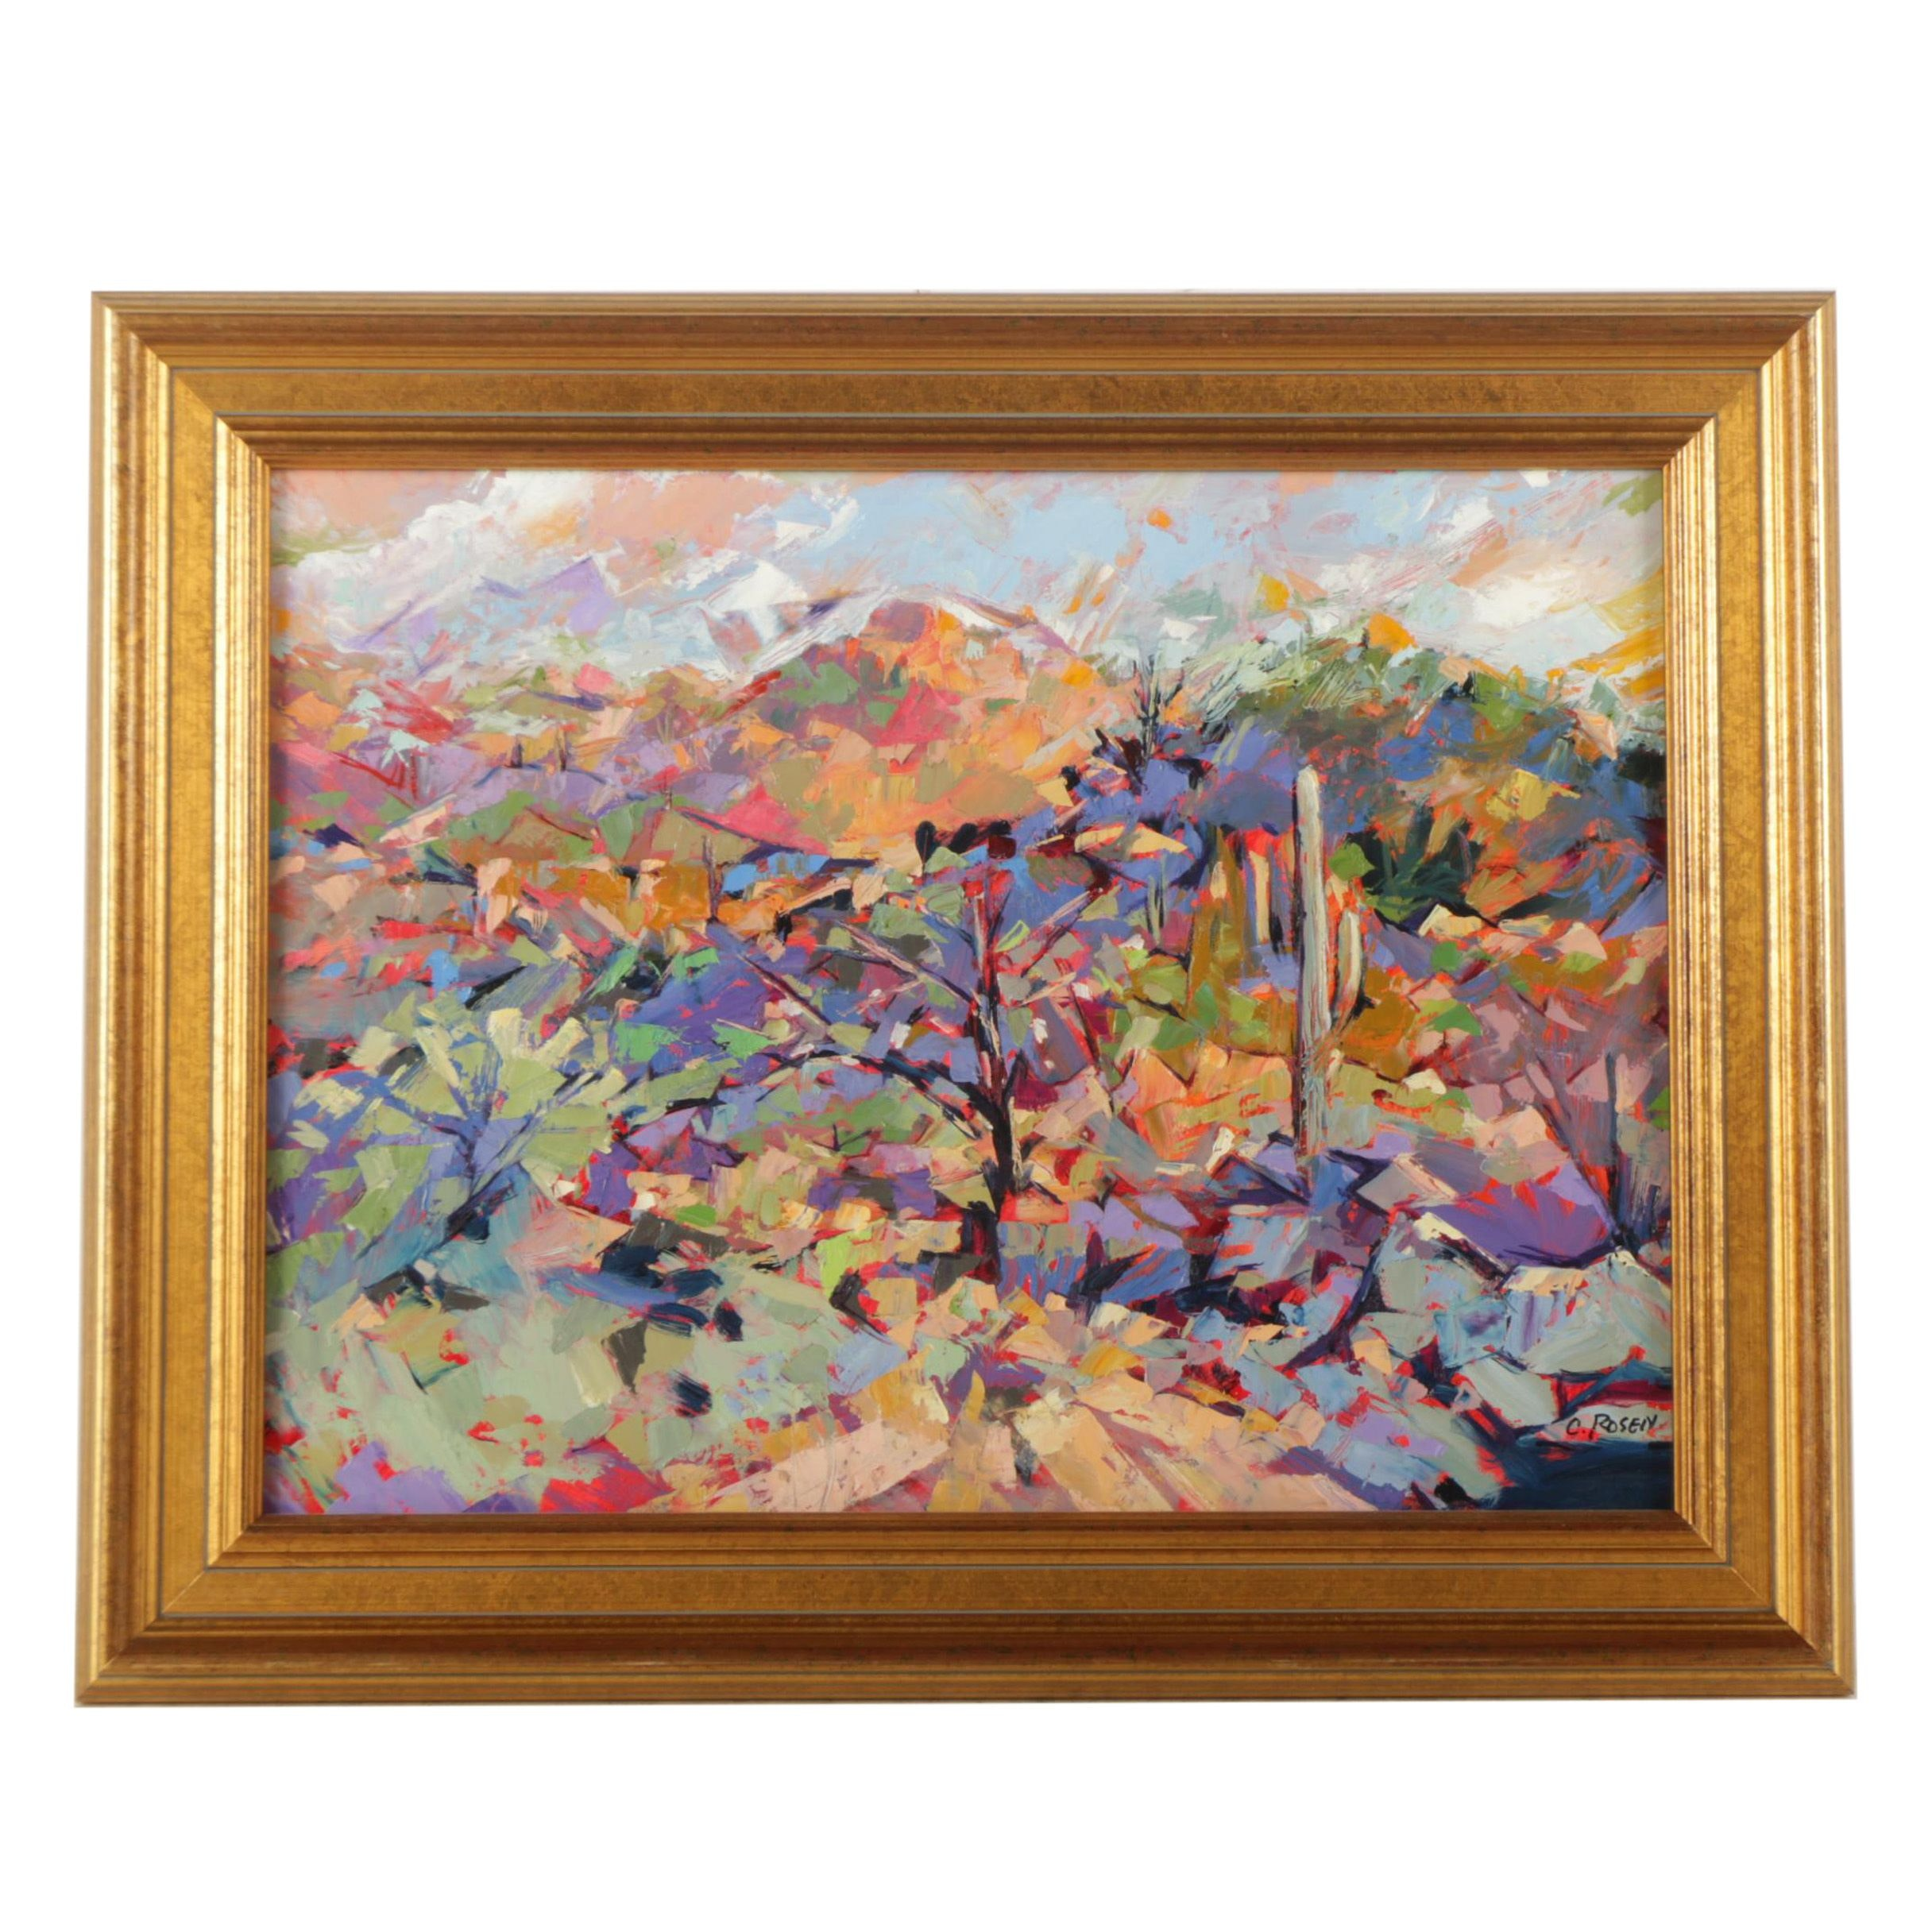 C. Rosen Oil Painting on Board of an Abstract Landscape